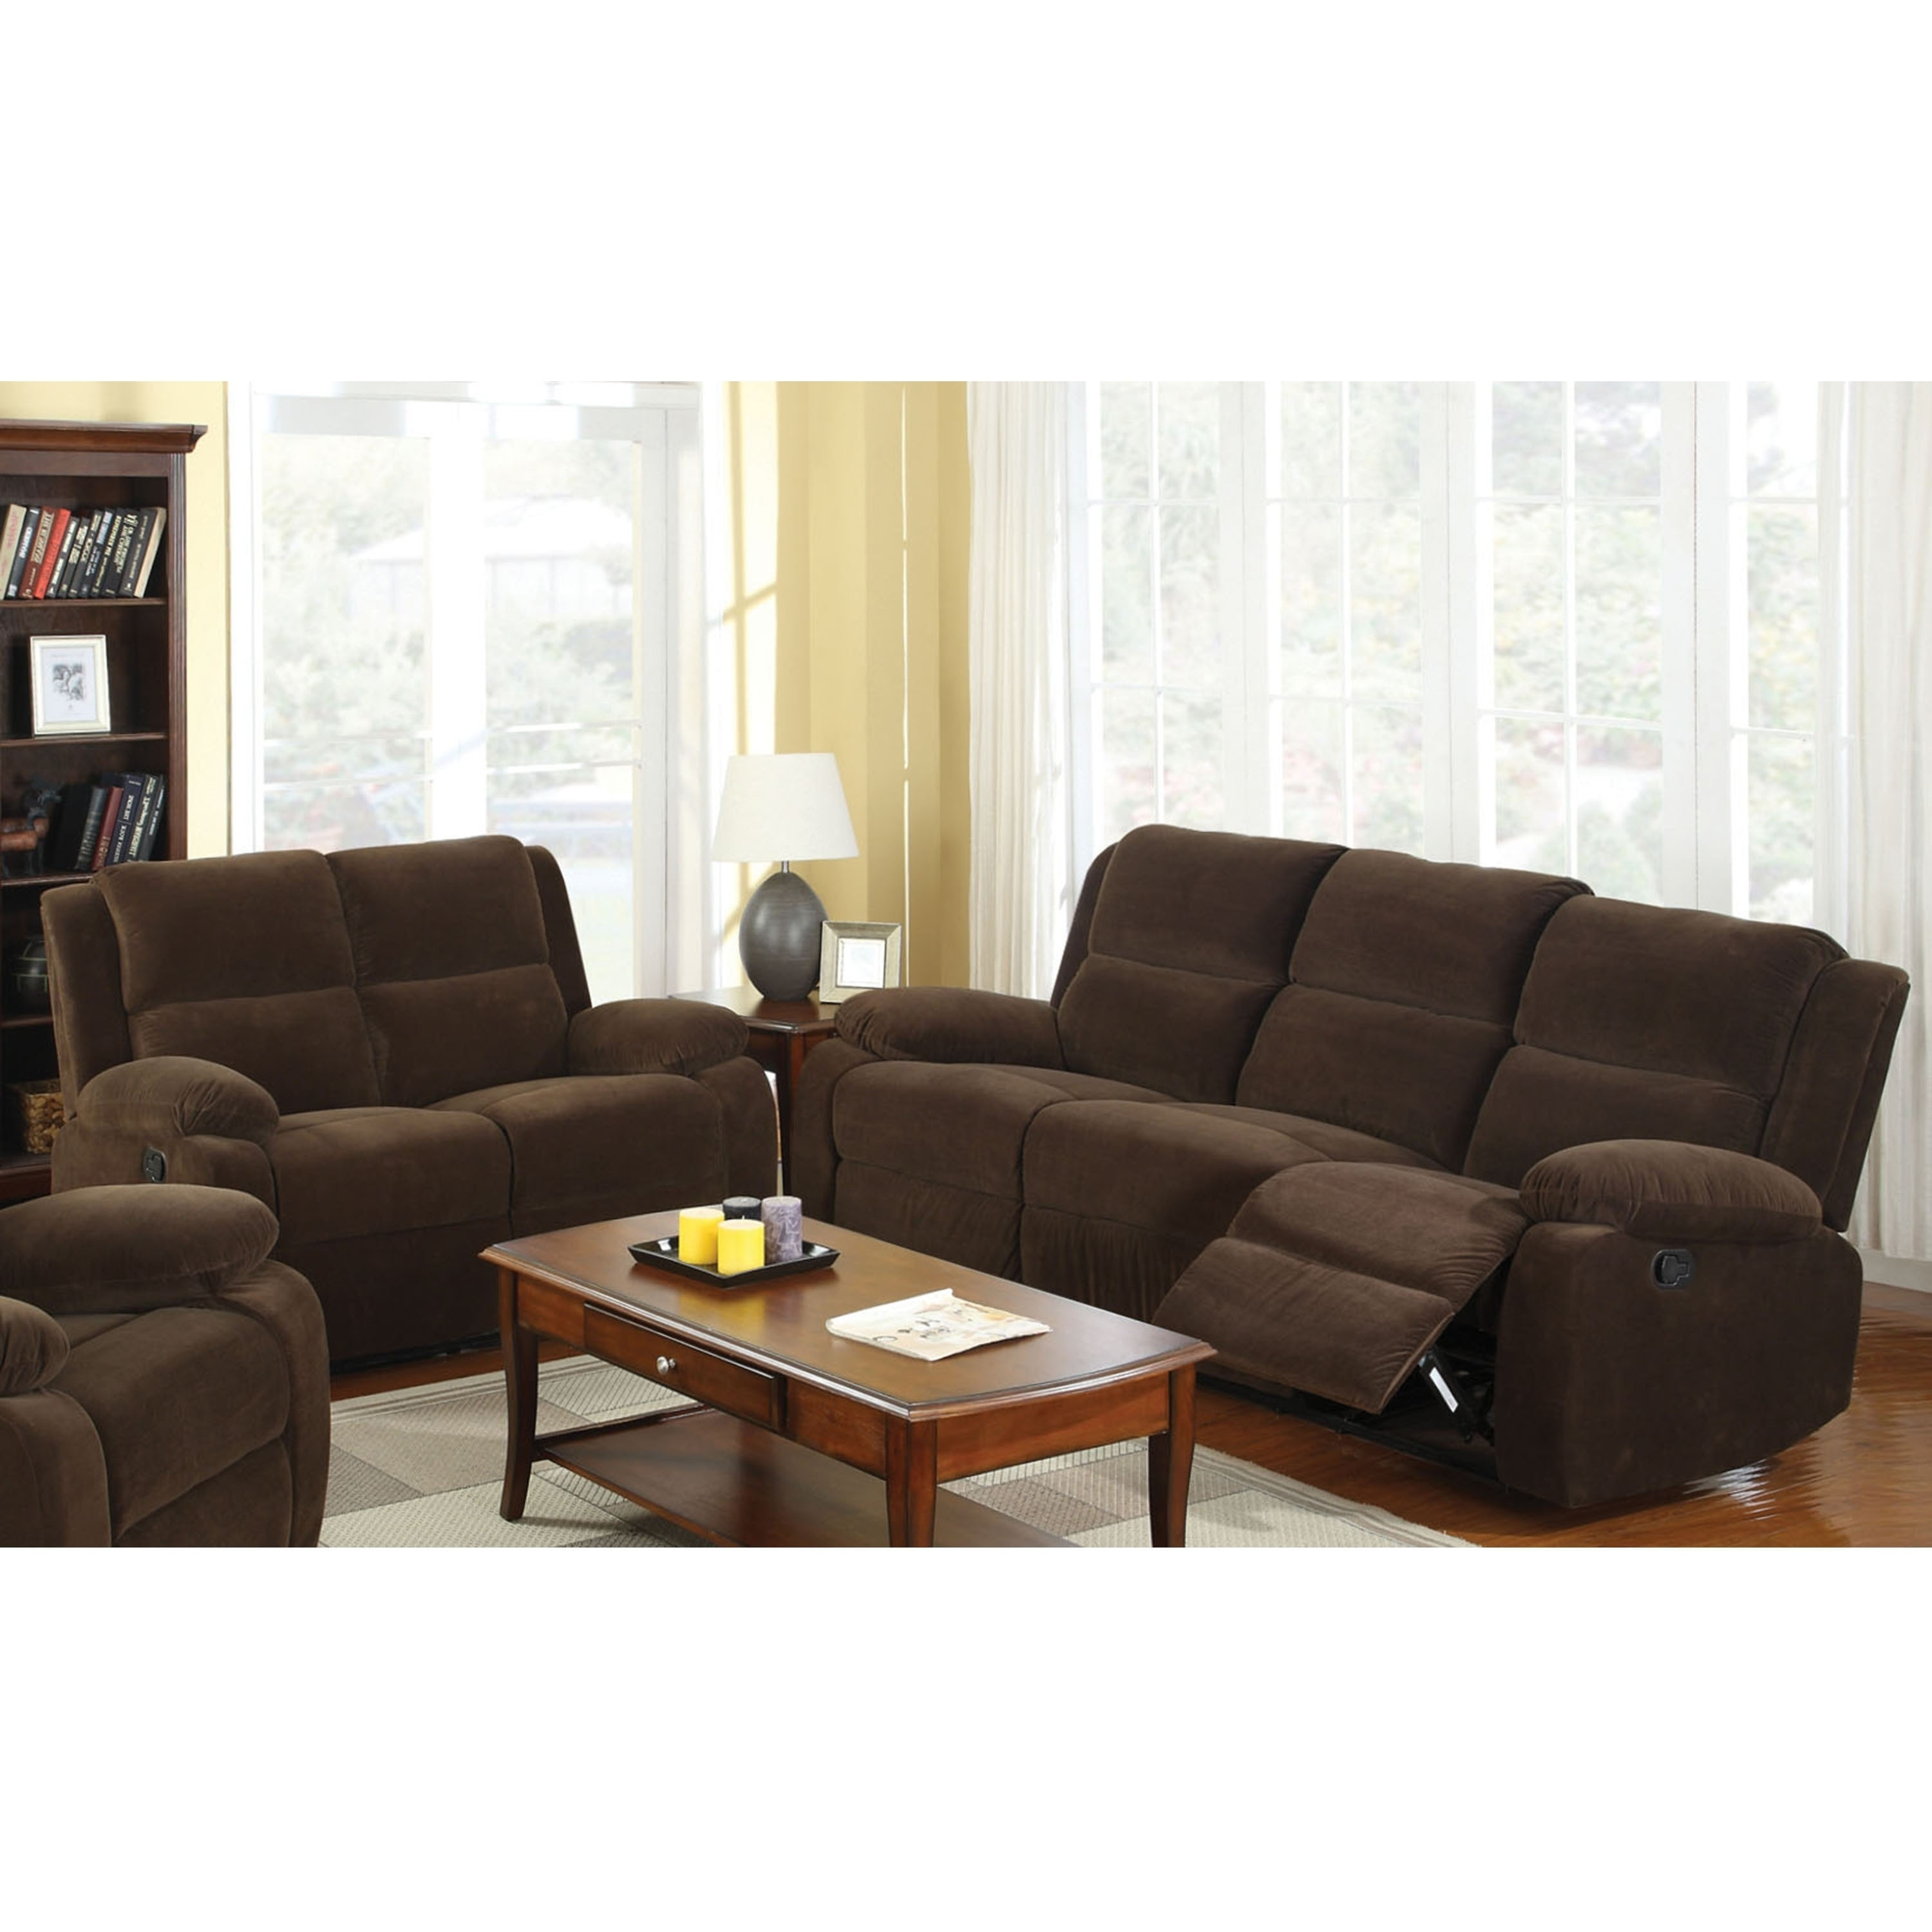 Furniture Of America Lood Transitional